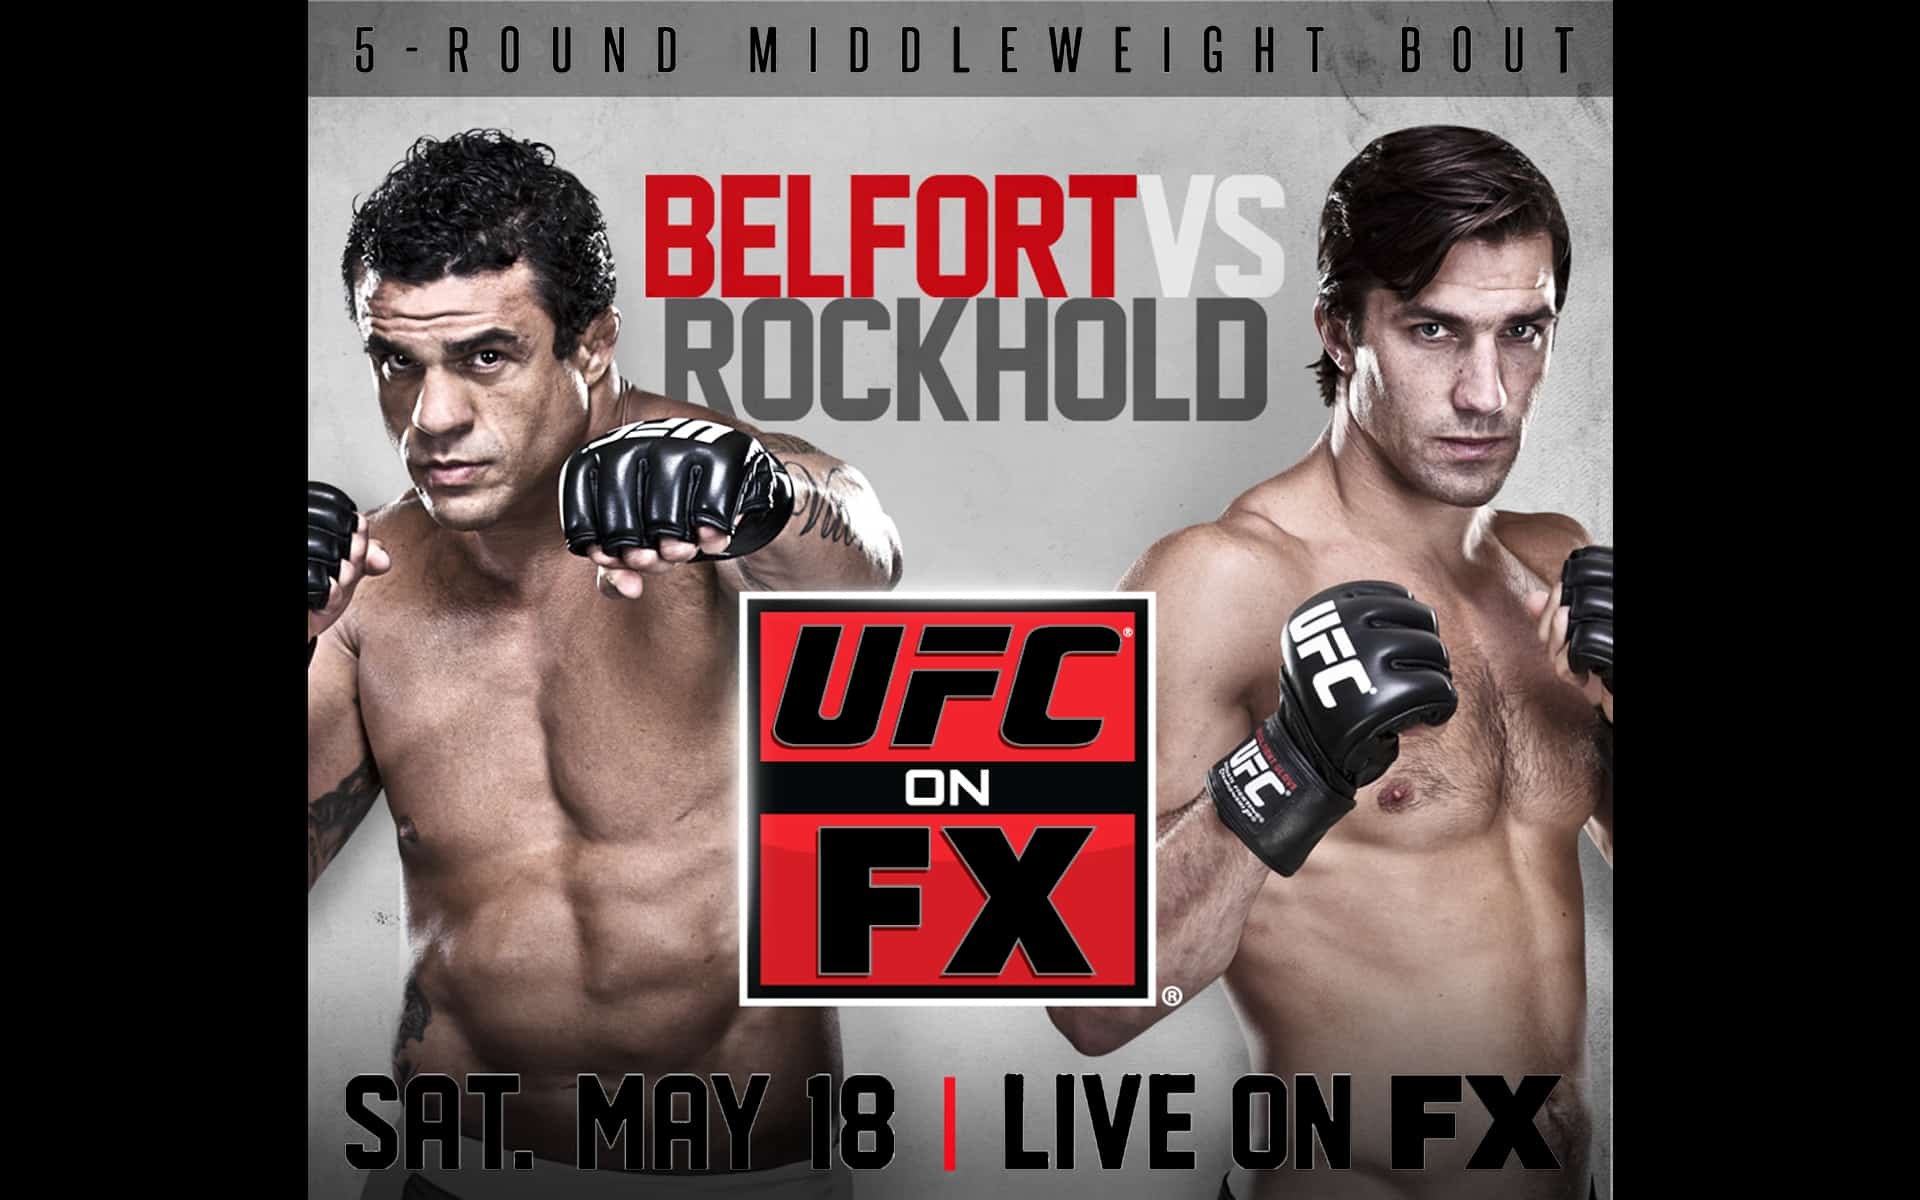 Watch Vitor Belfort Get All Fired Up at Luke Rockhold at the UFC on FX 8 Weigh-Ins